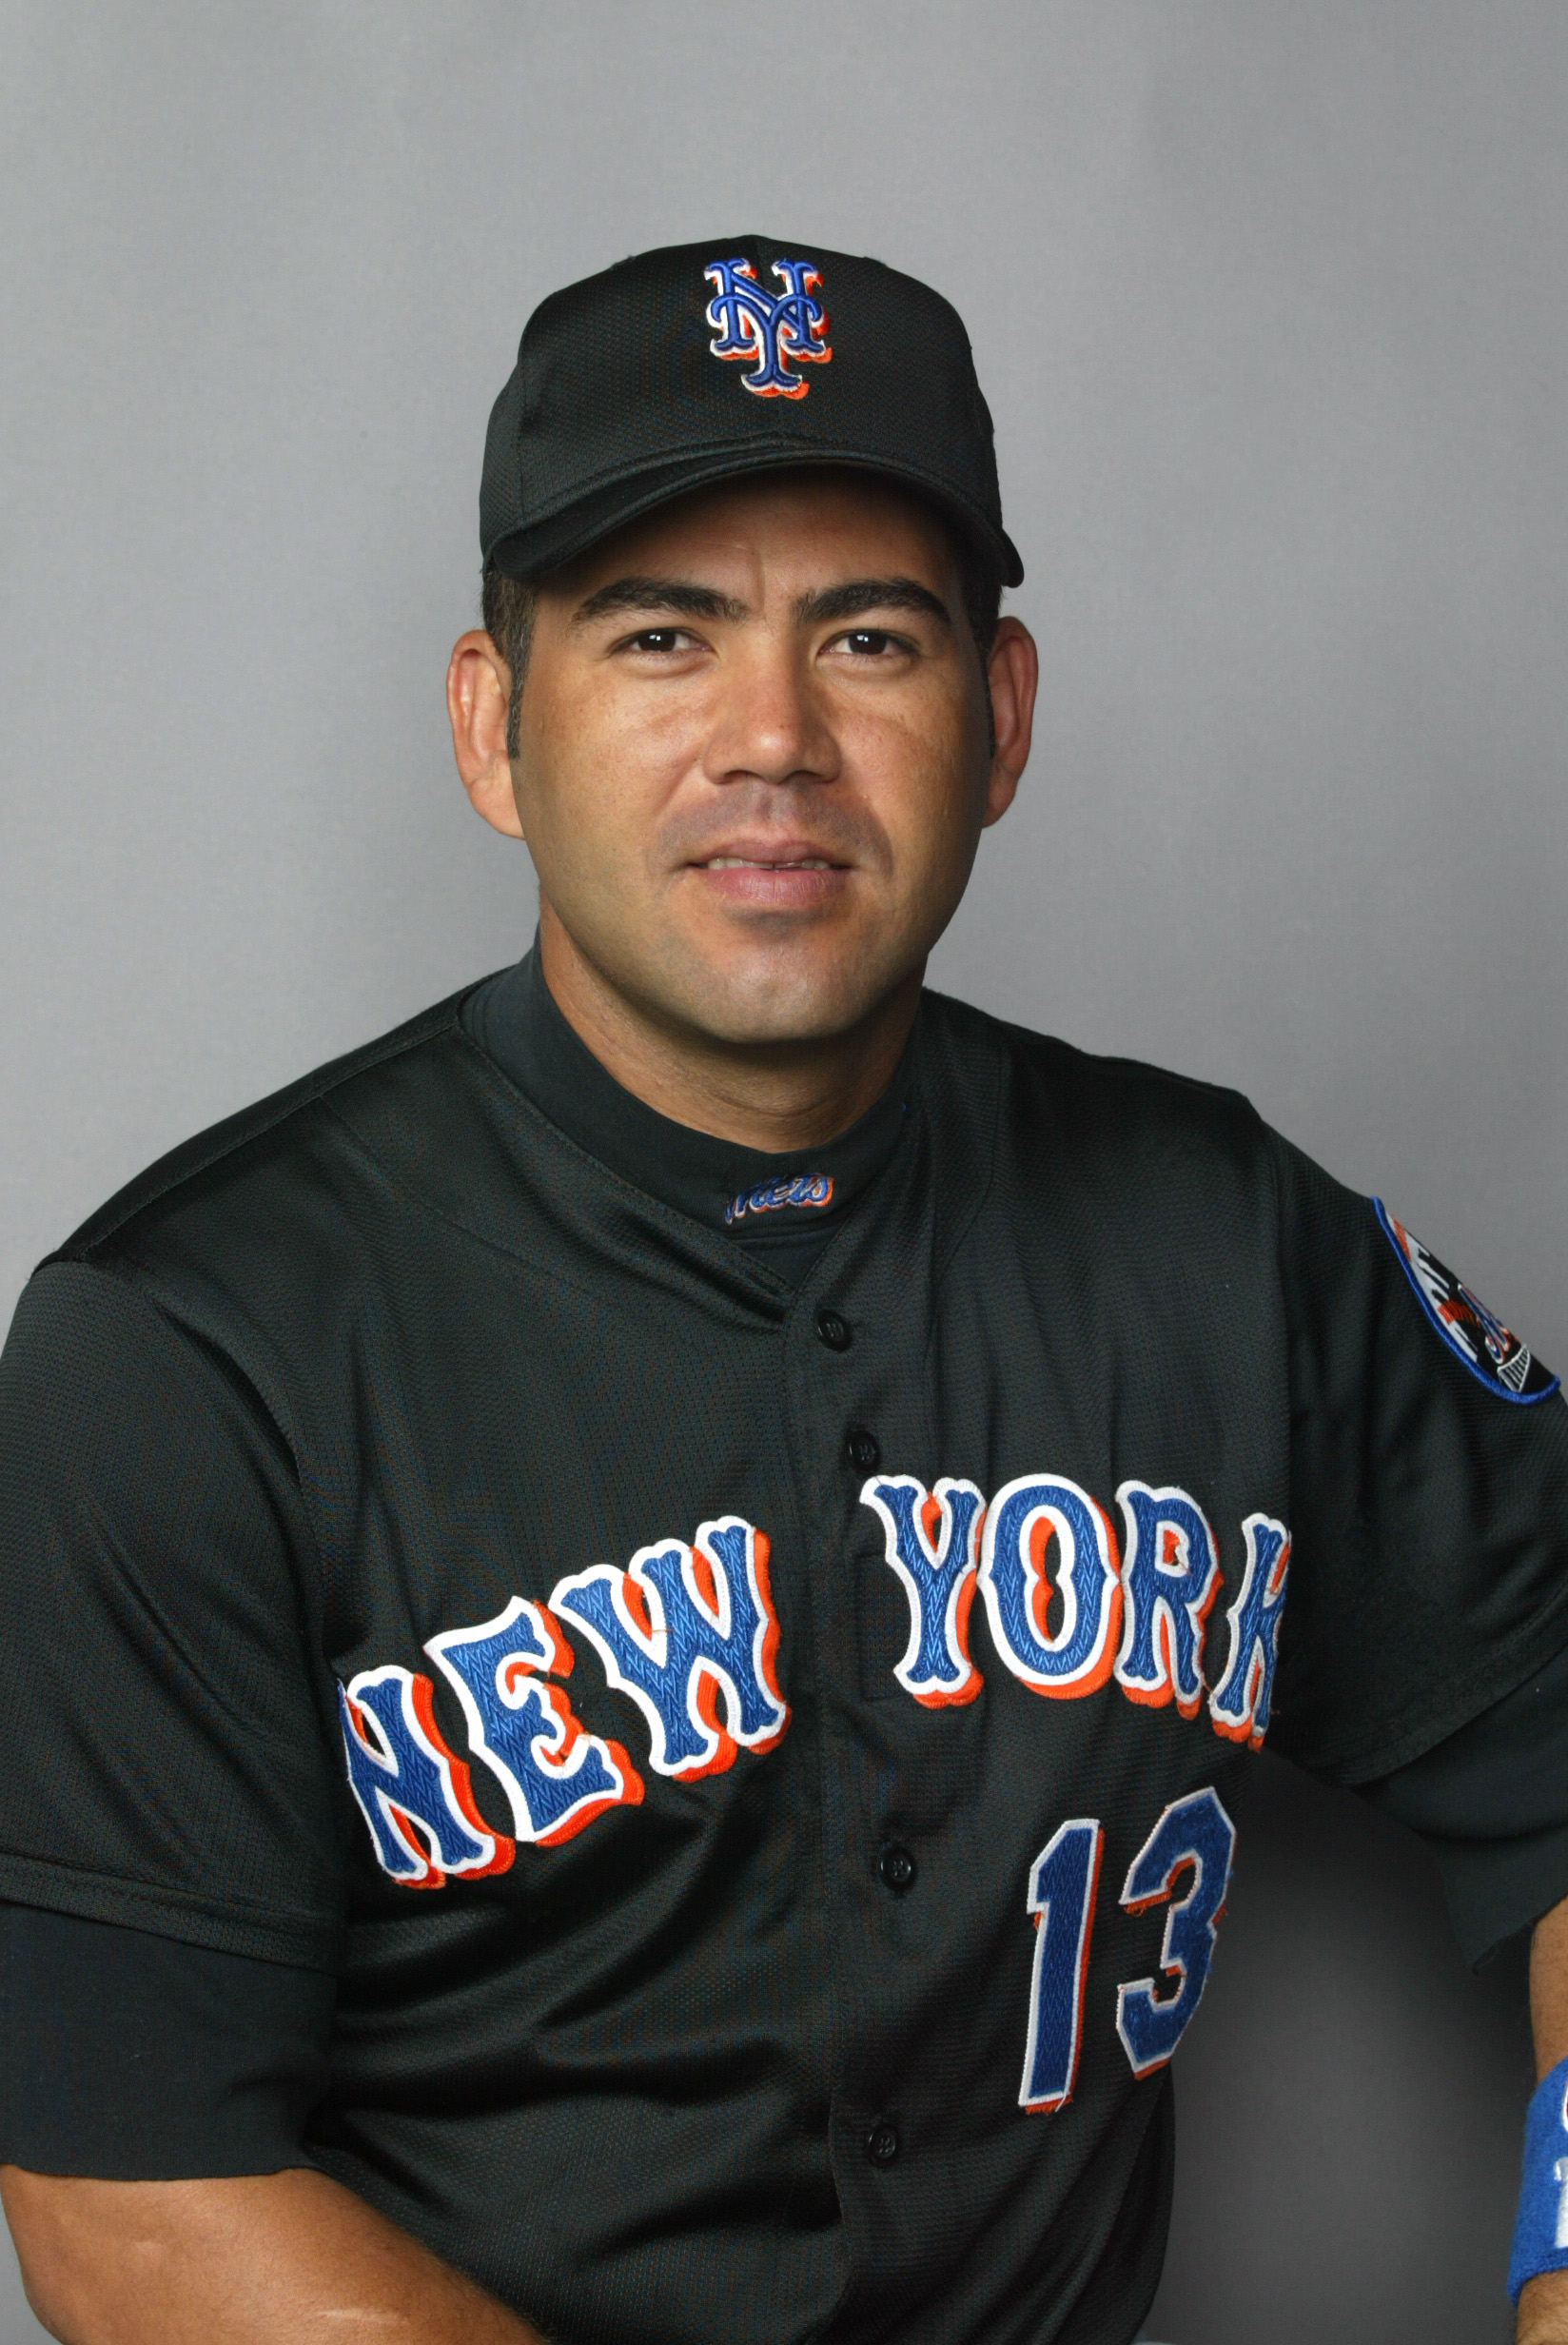 25 Feb 2002: Edgardo Alfonzo # 13 of the New York Mets posses for Spring Training Picture Day at Thomas J. White Stadium in Port St. Lucie Florida. DIGITAL IMAGE. Mandatory Credit: Eliot Schechter/Getty Images